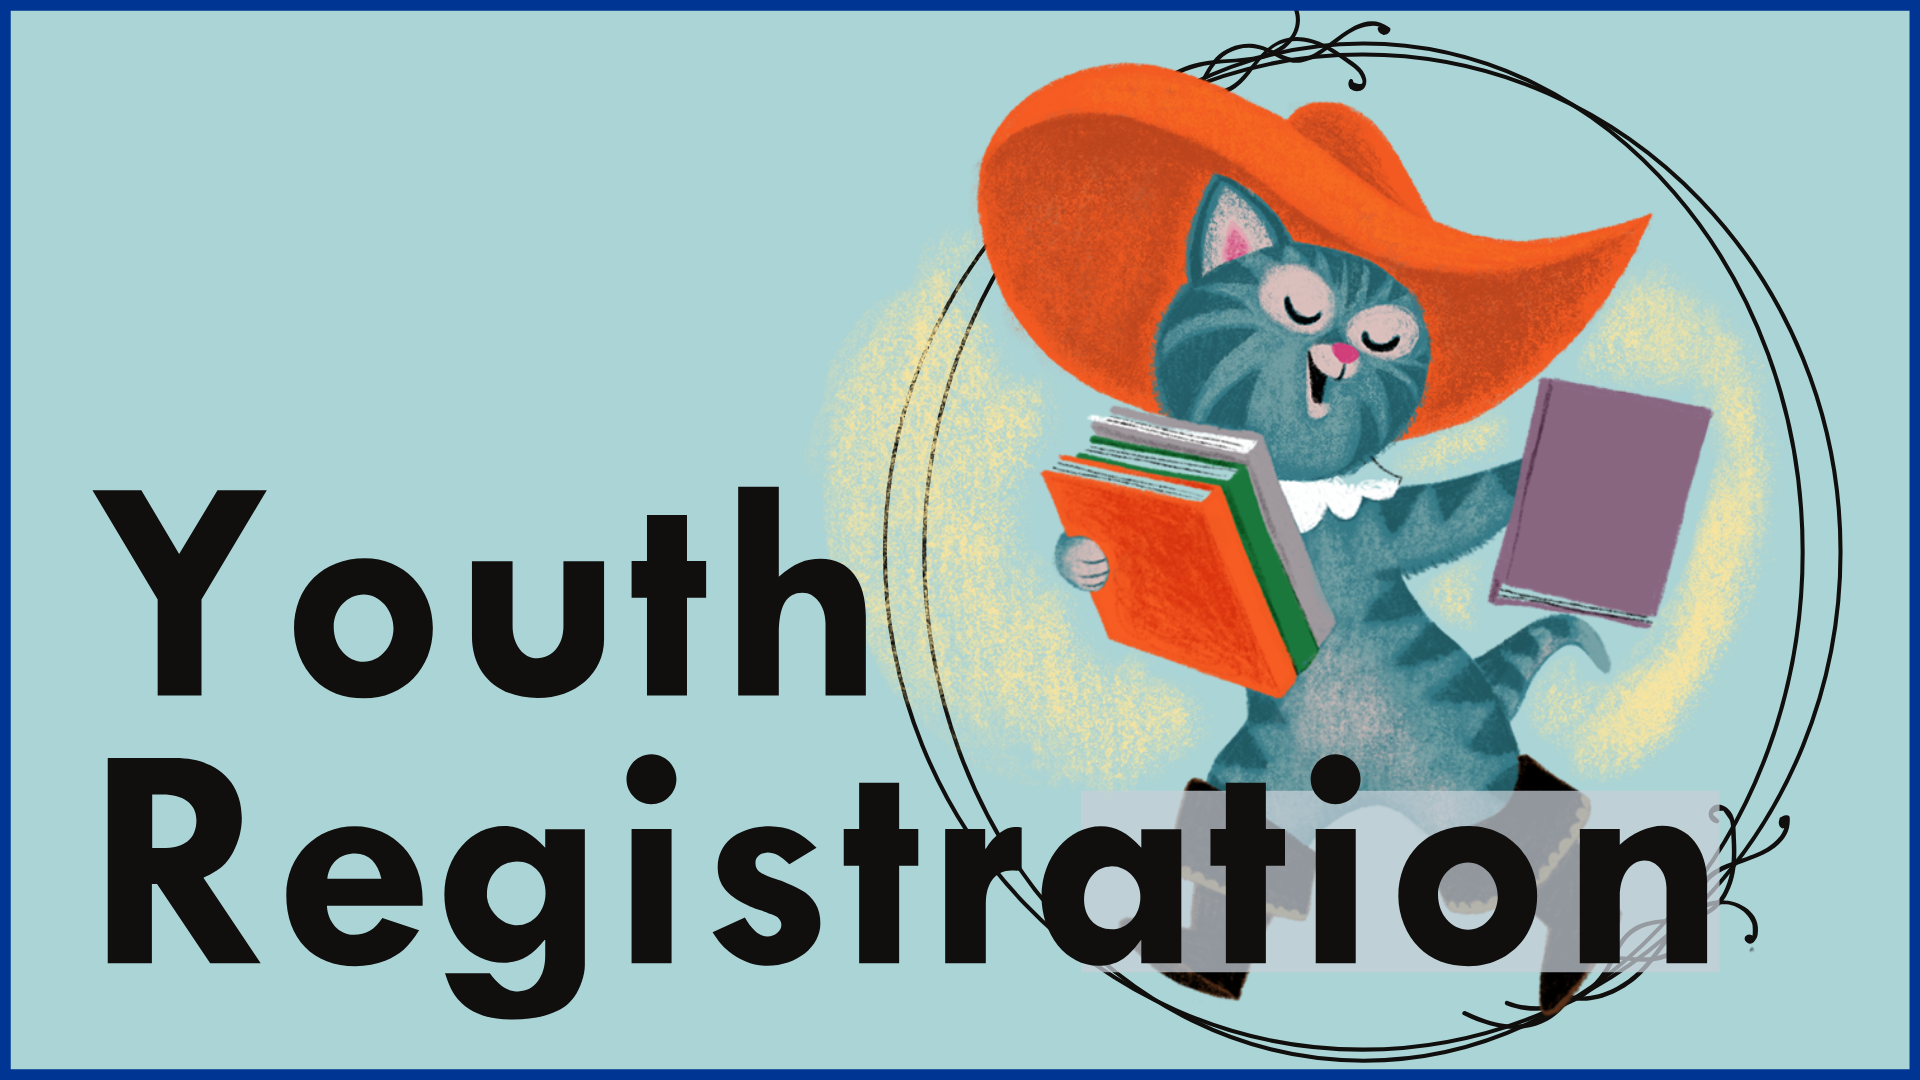 Youth Registration illustrarion of puss in boots